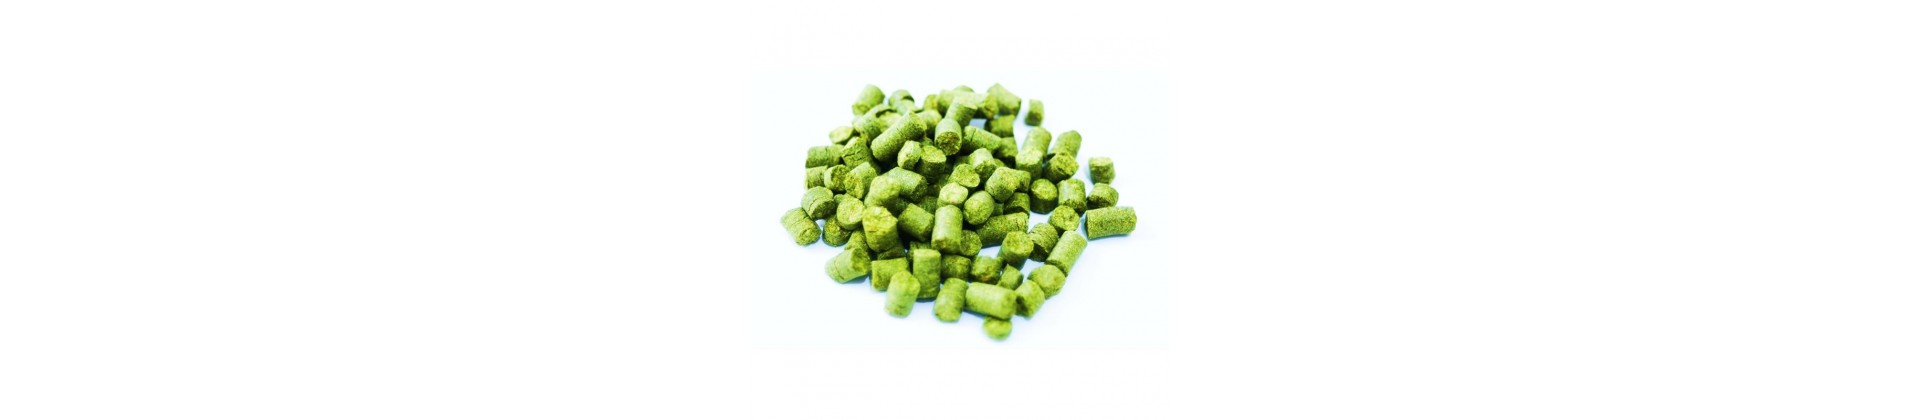 Aromatic hops